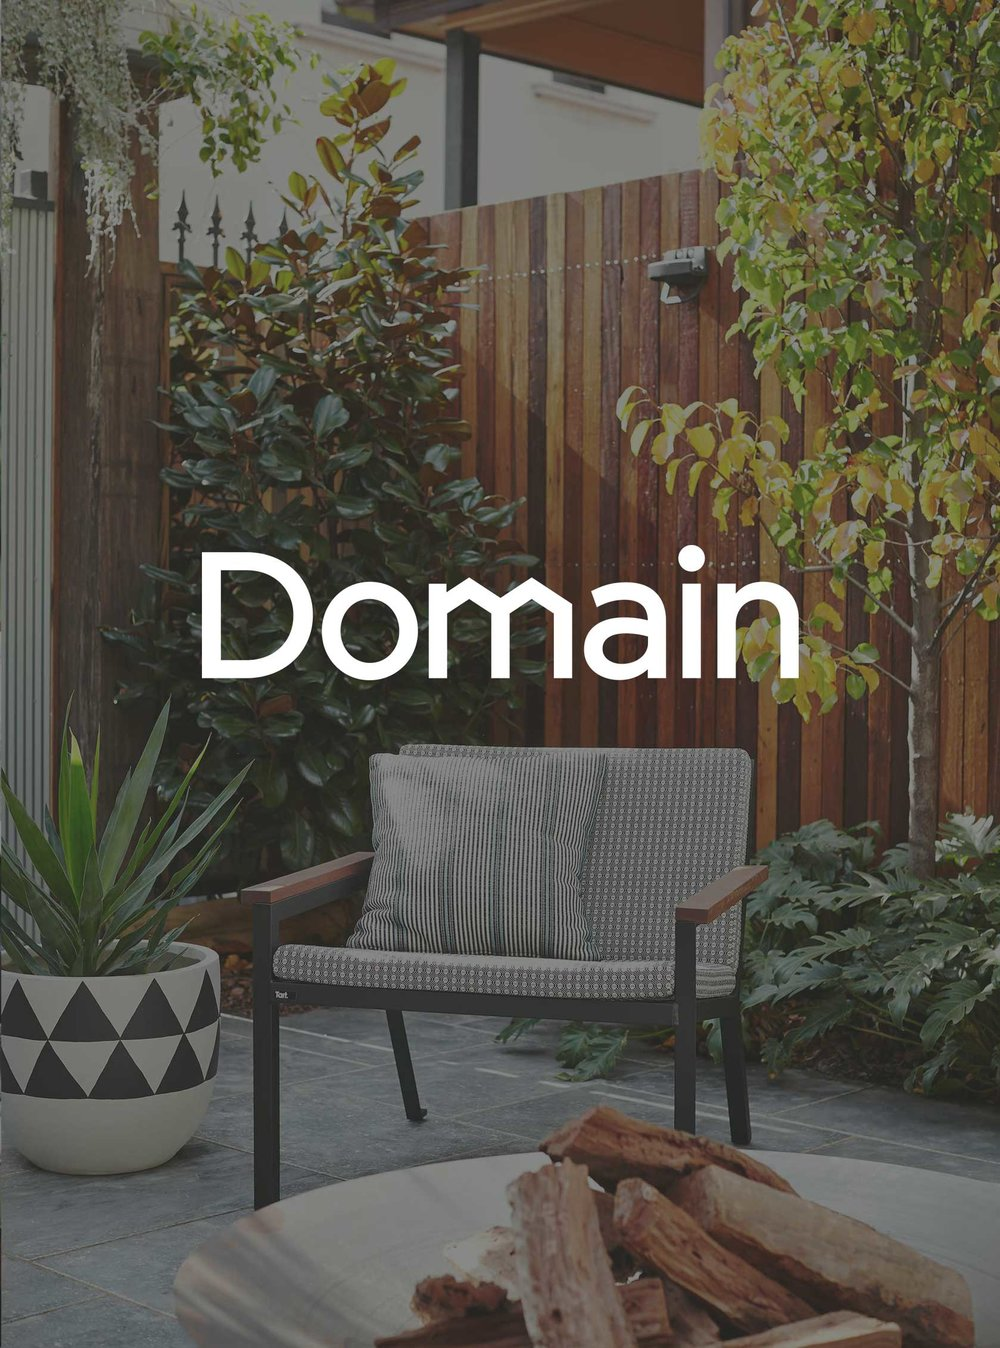 Domain - 'How to Get Your Garden and Backyard Ready for Winter'Jun 2018